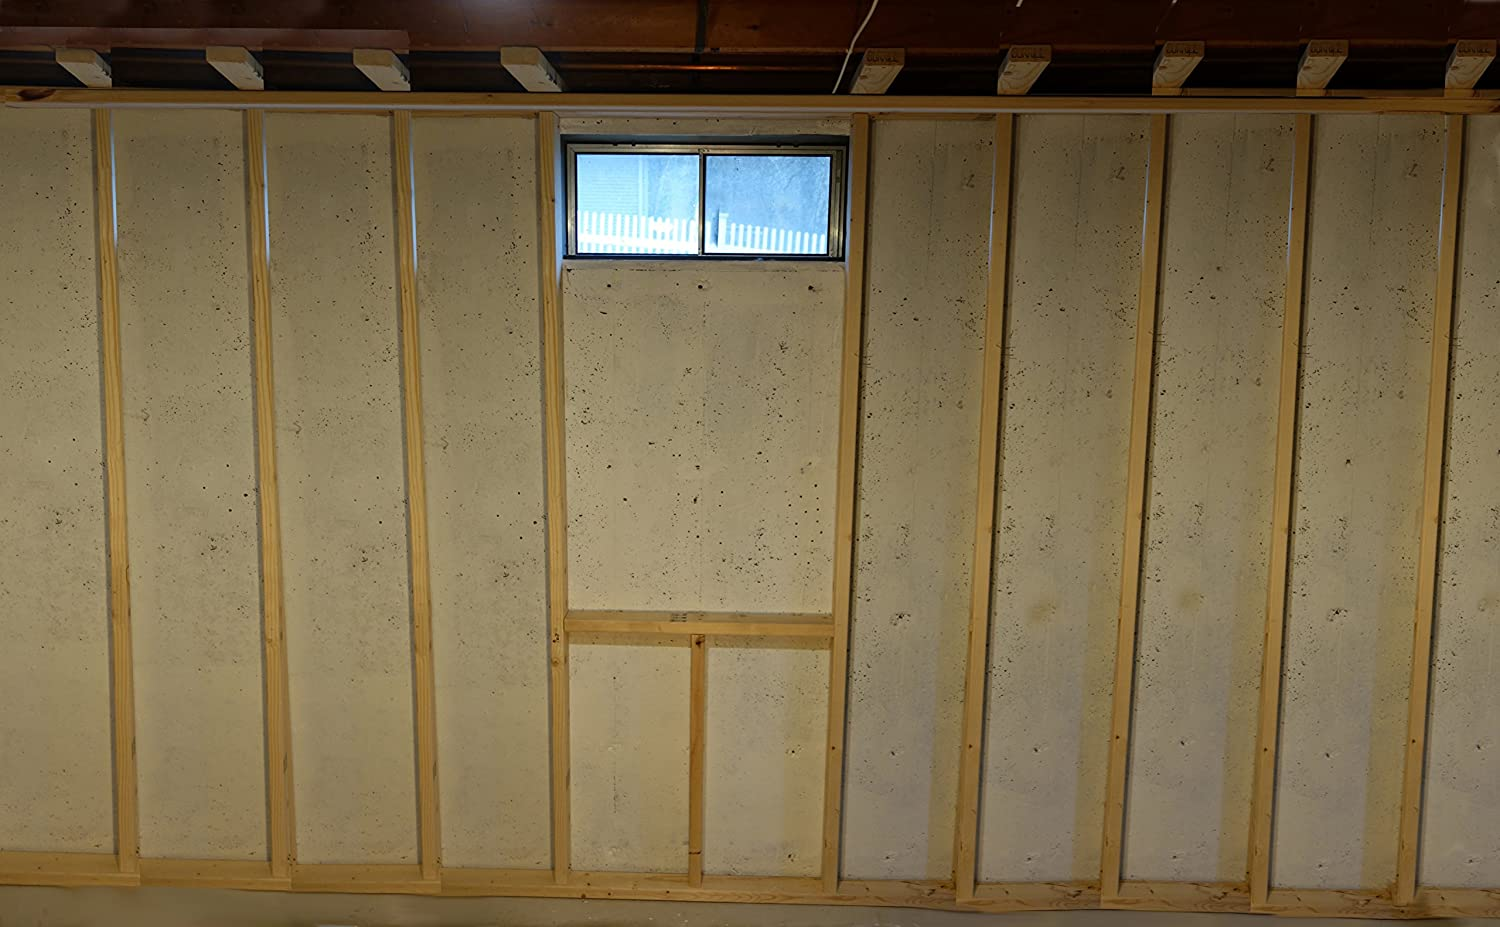 Chase virtual window for rooms that have no real window great for basements turns that small high basement window into a full size window